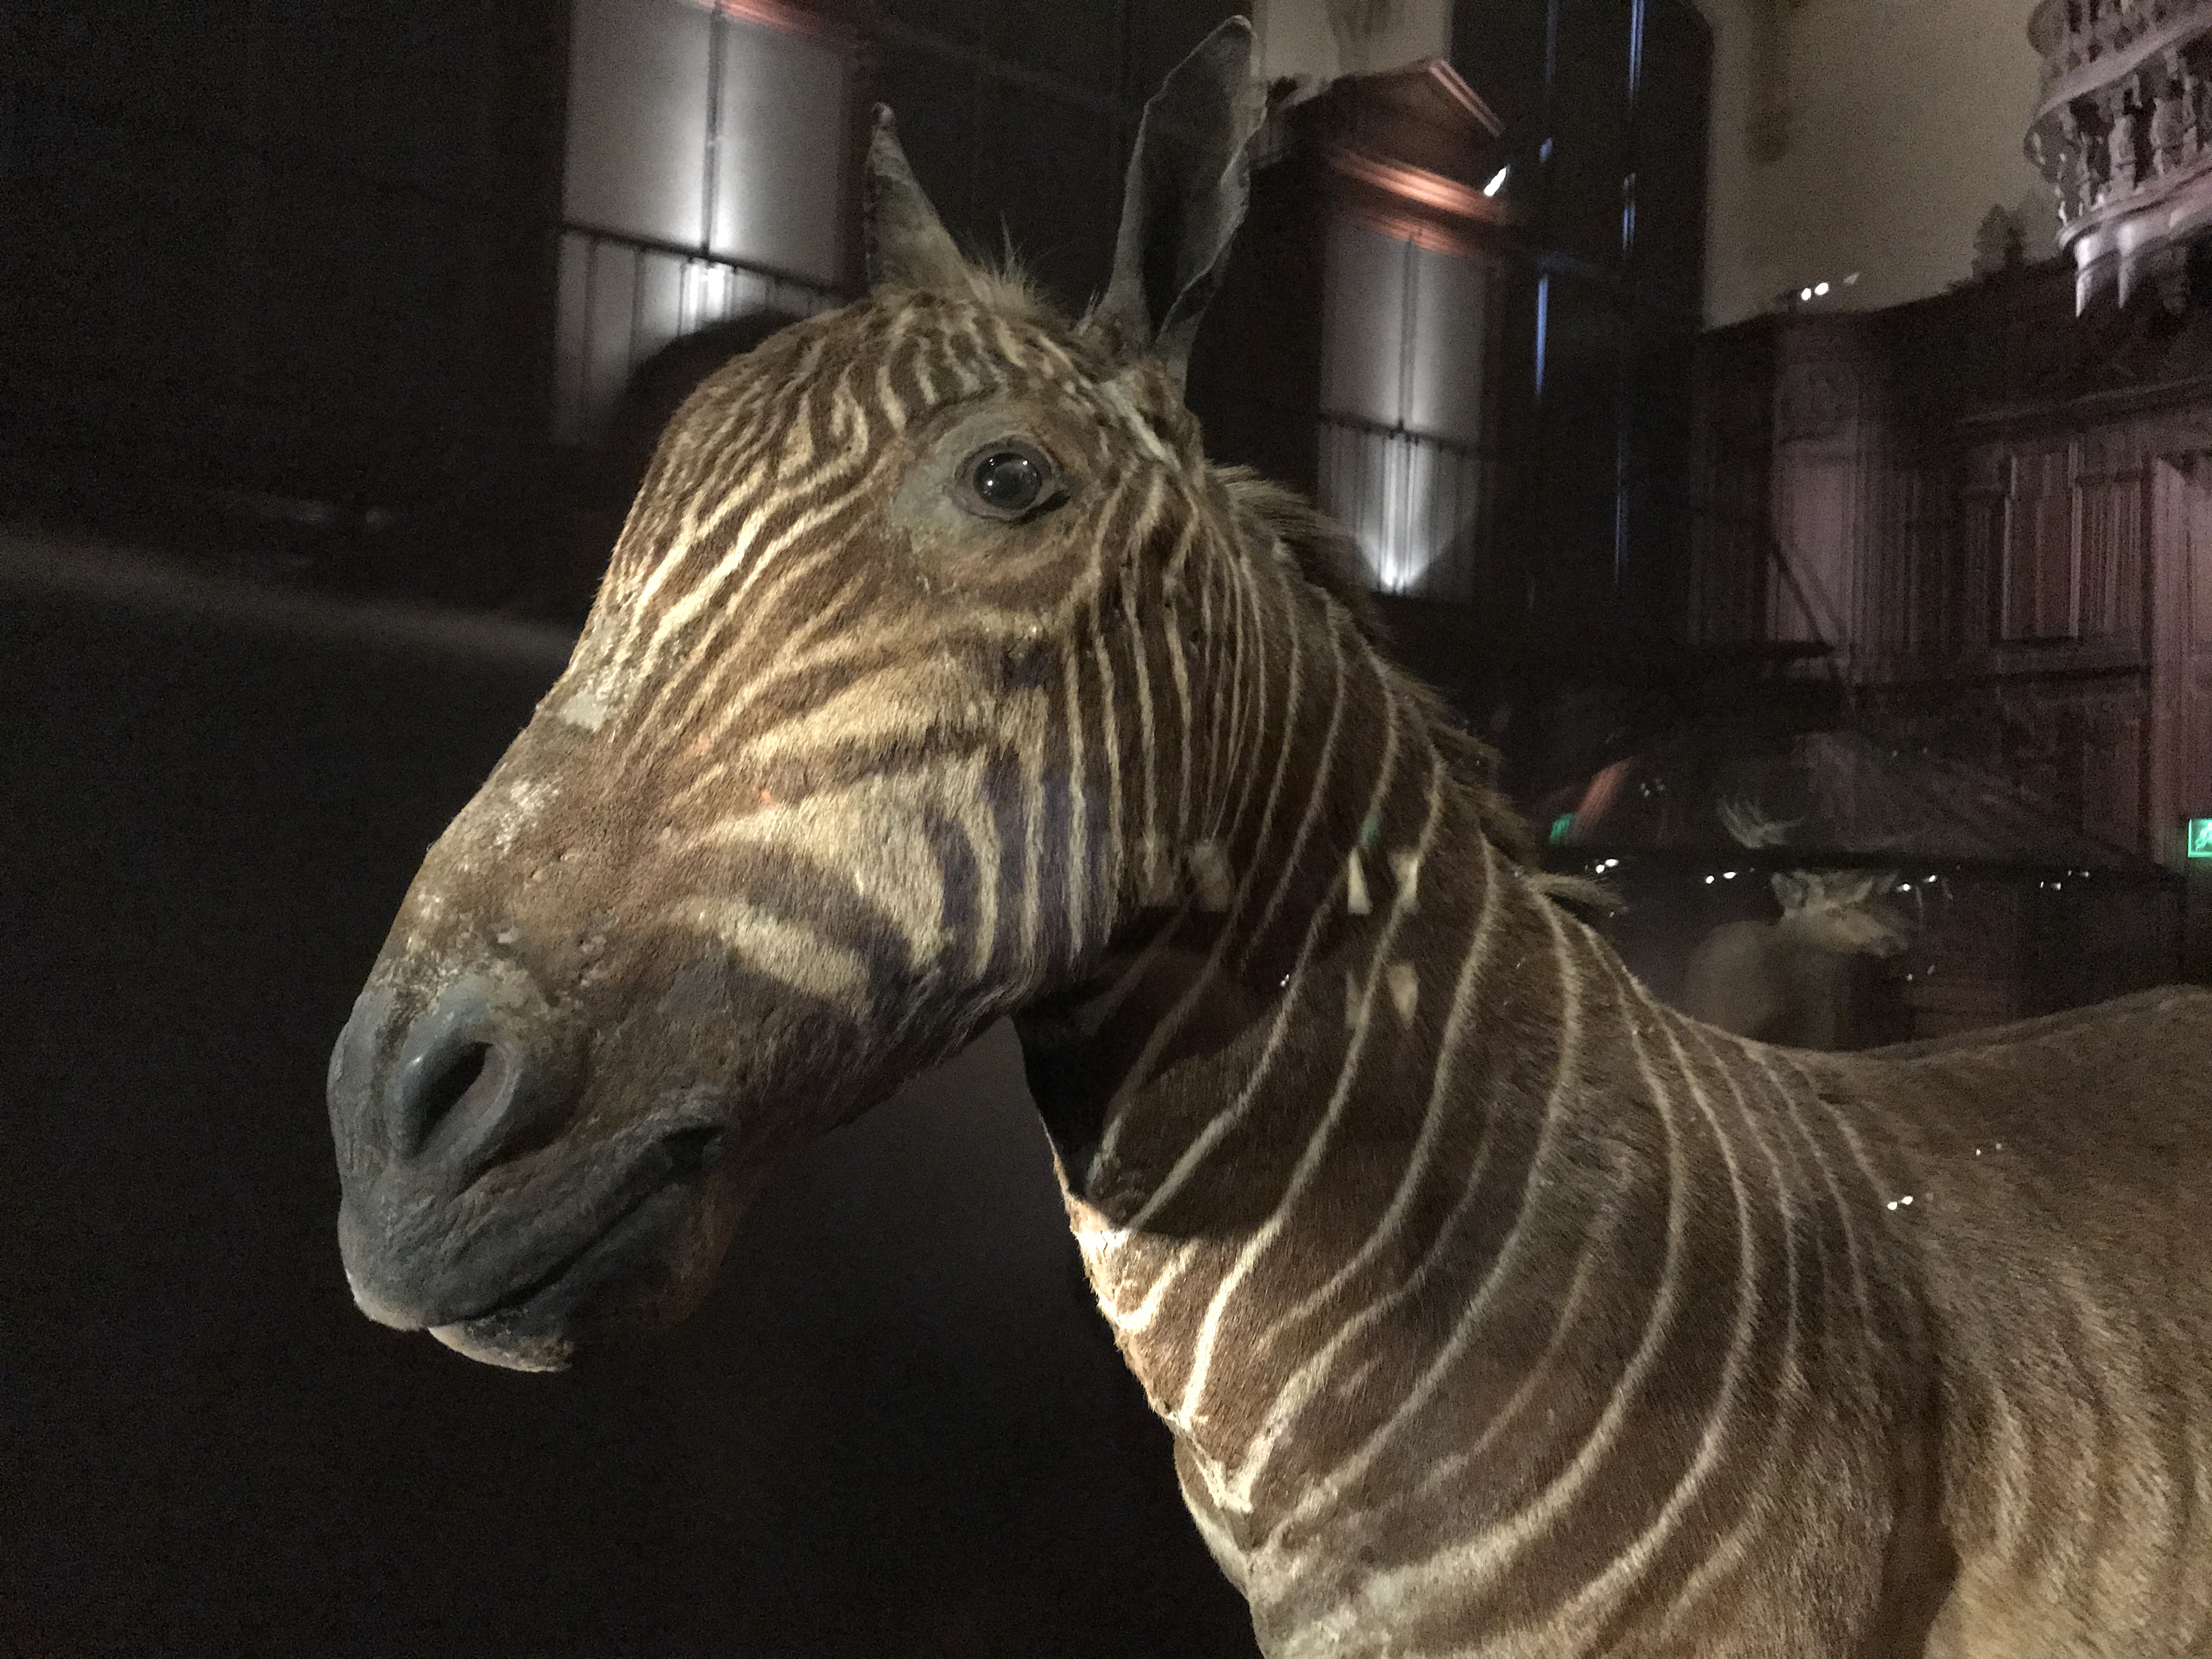 A Cautionary Tale - Quagga (A Subspecies of Zebra) Are Now Extinct This Specimen is at the Grande Galerie de L'Évolution in Paris, France